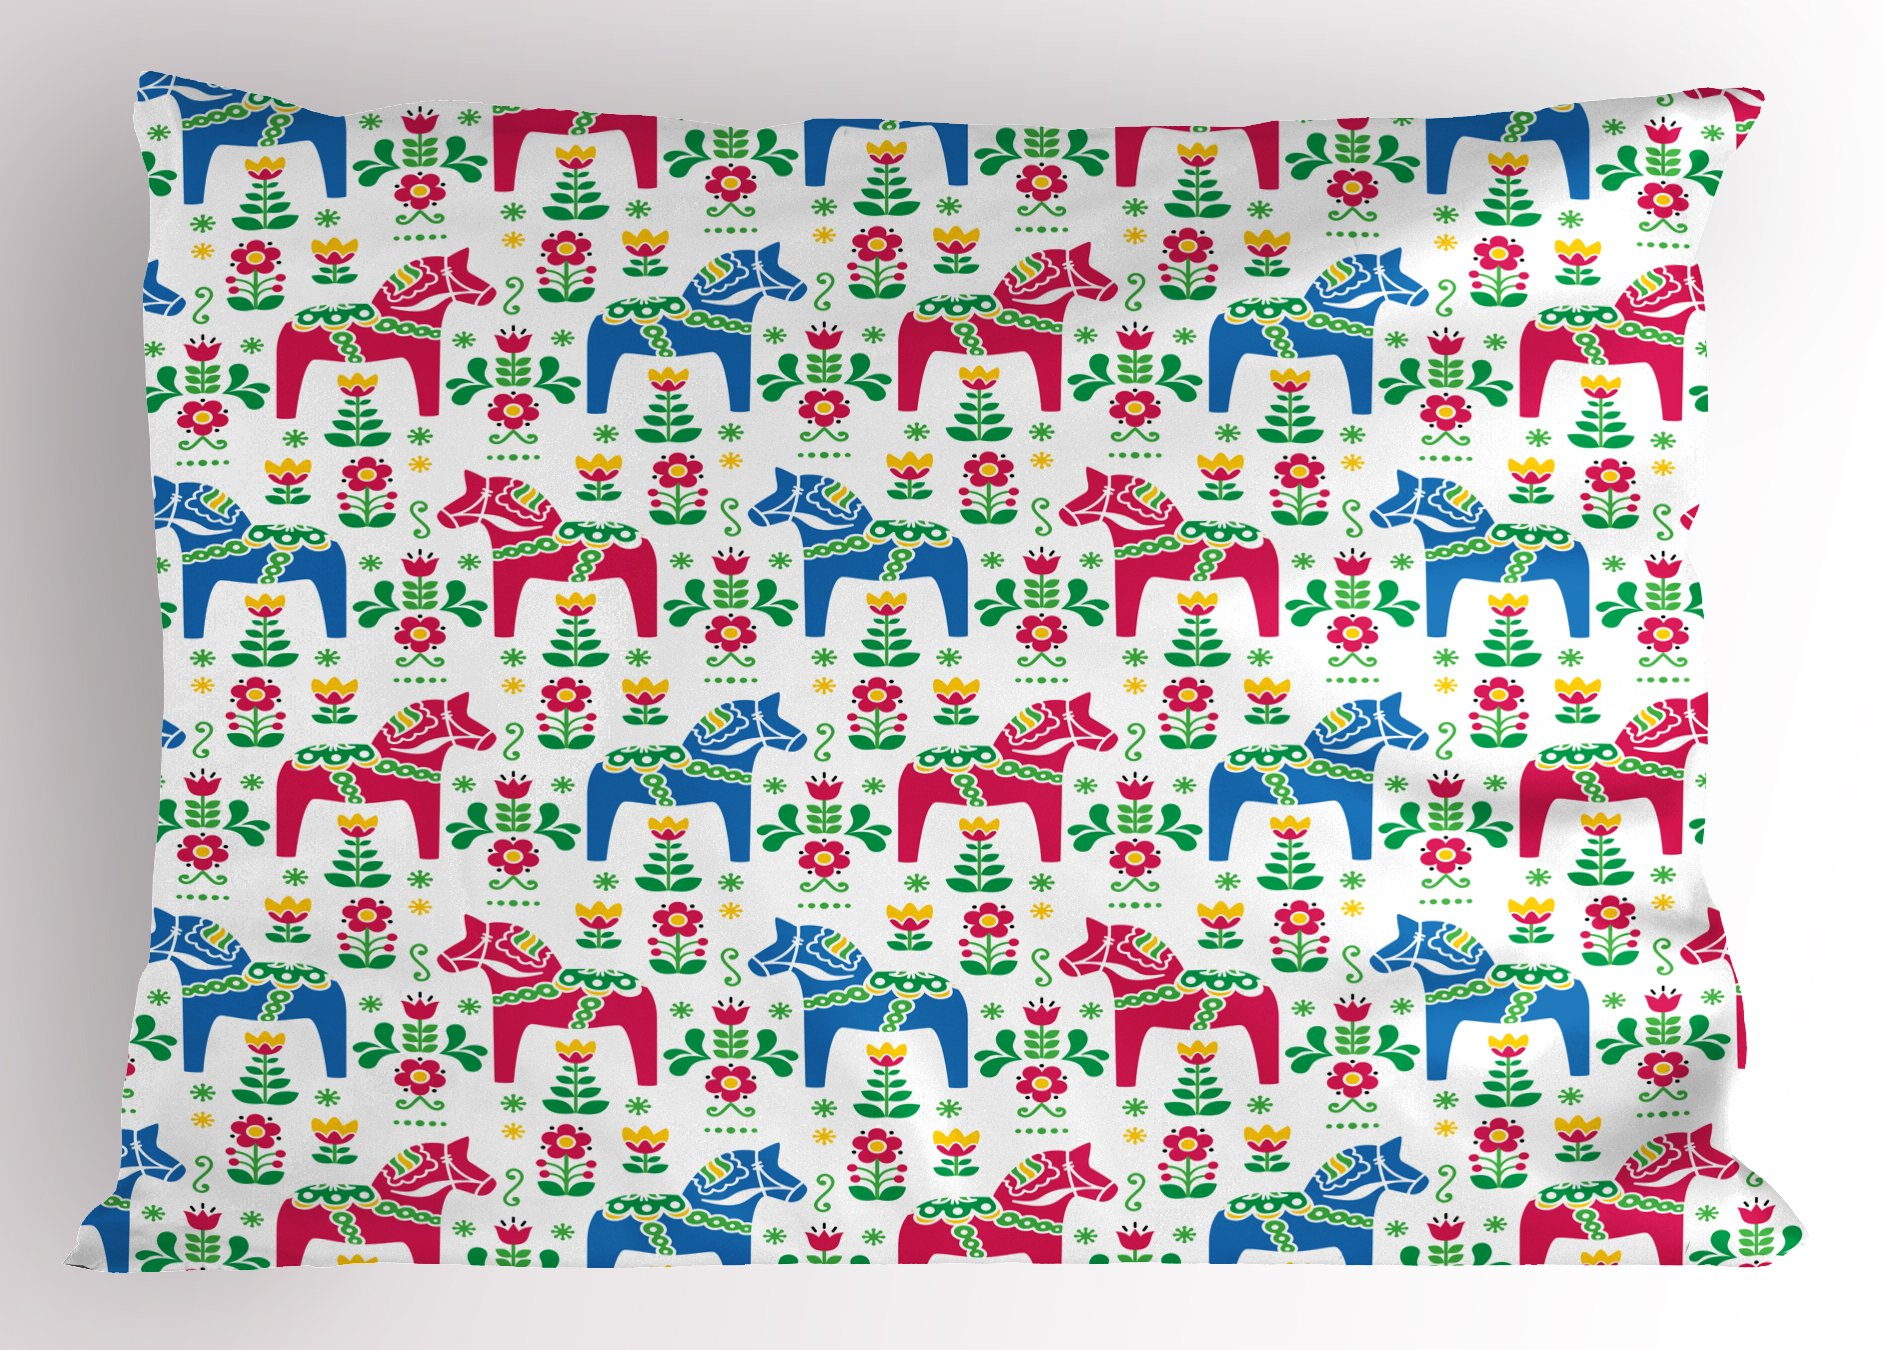 Ambesonne Horses Pillow Sham, Classic Swedish Dalecarlian Coral Azure Blue Animals and Green Floral Arrangement, Decorative Standard Queen Size Printed Pillowcase, 30 X 20 inches, Multicolor